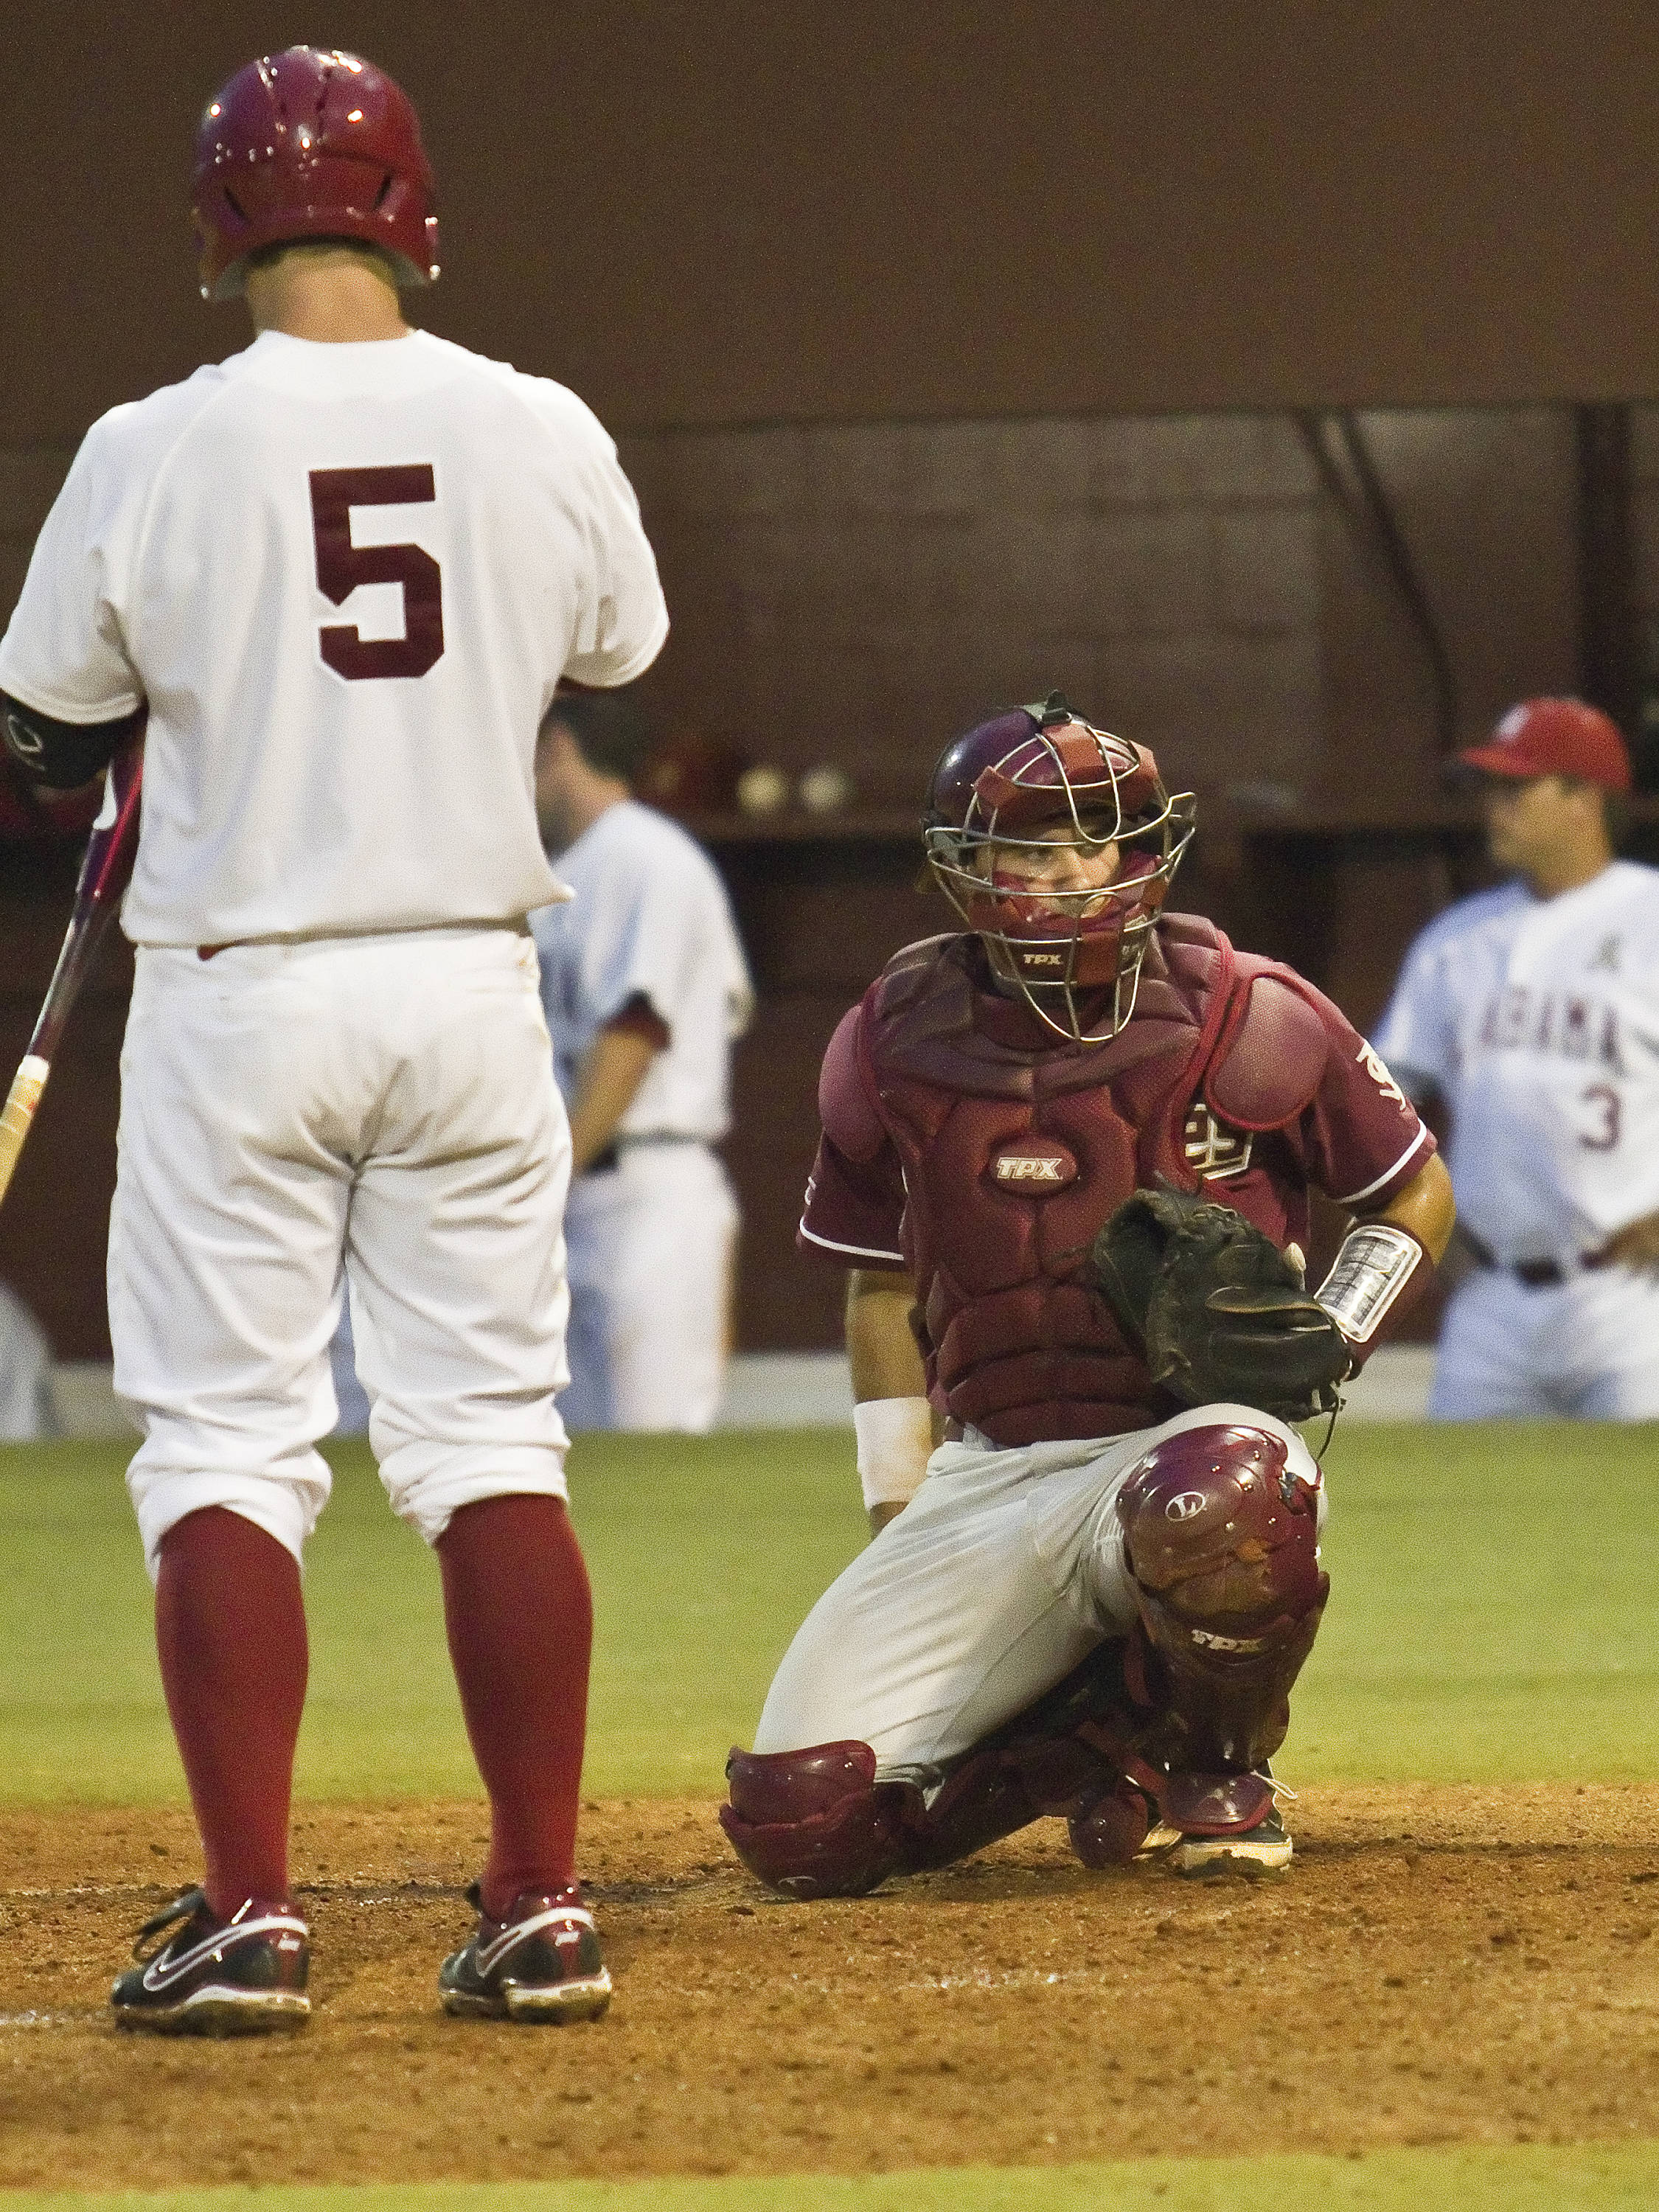 Catcher Rafael Lopez (29) getting signals from the bench